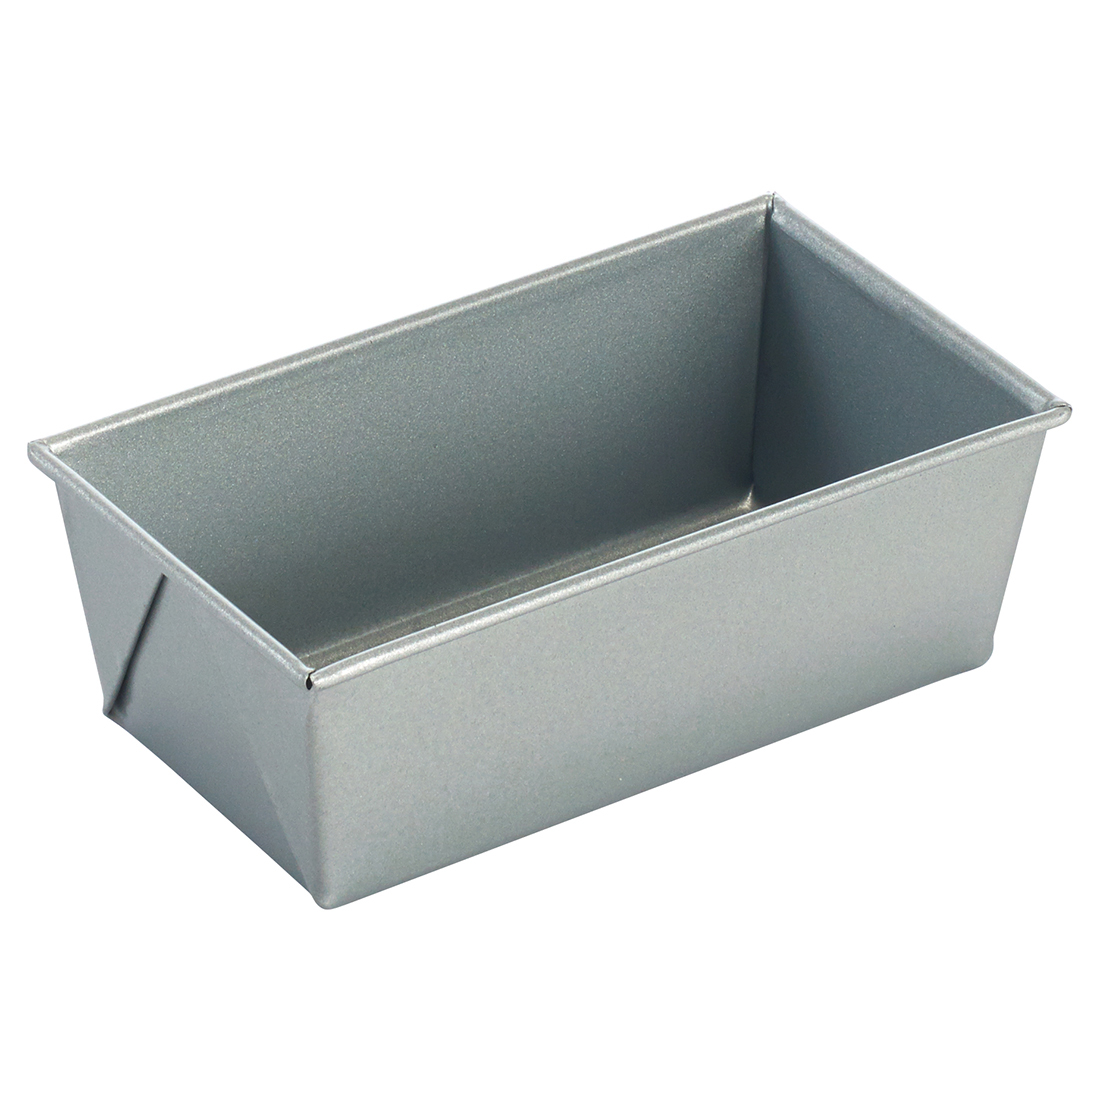 "Winco HLP-53 Loaf Pan, 5-5/8"" x 3-1/8"" x 2-1/4""H, Aluminized Steel"